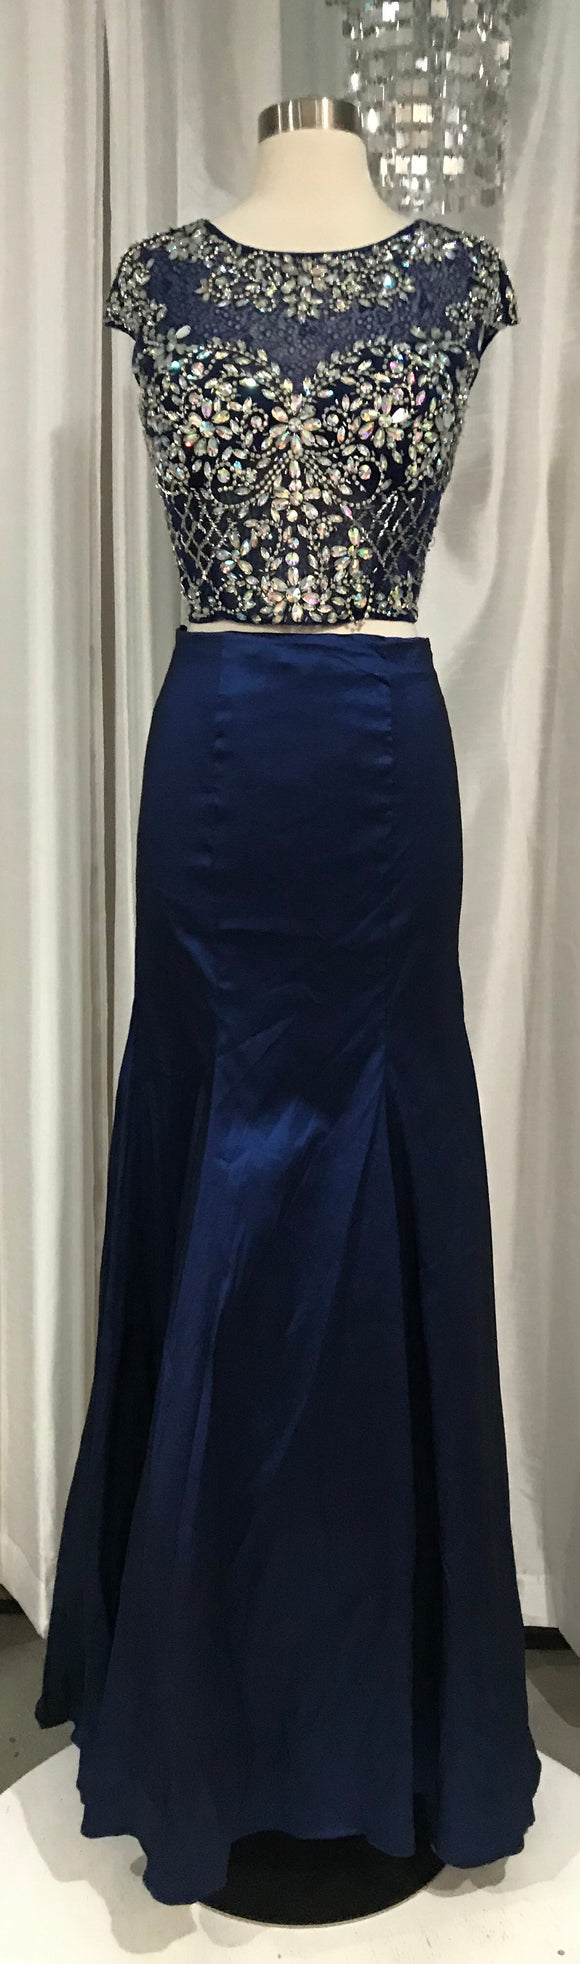 BOUTIQUE Long Navy Two Piece Gown With Beaded Top Size 10